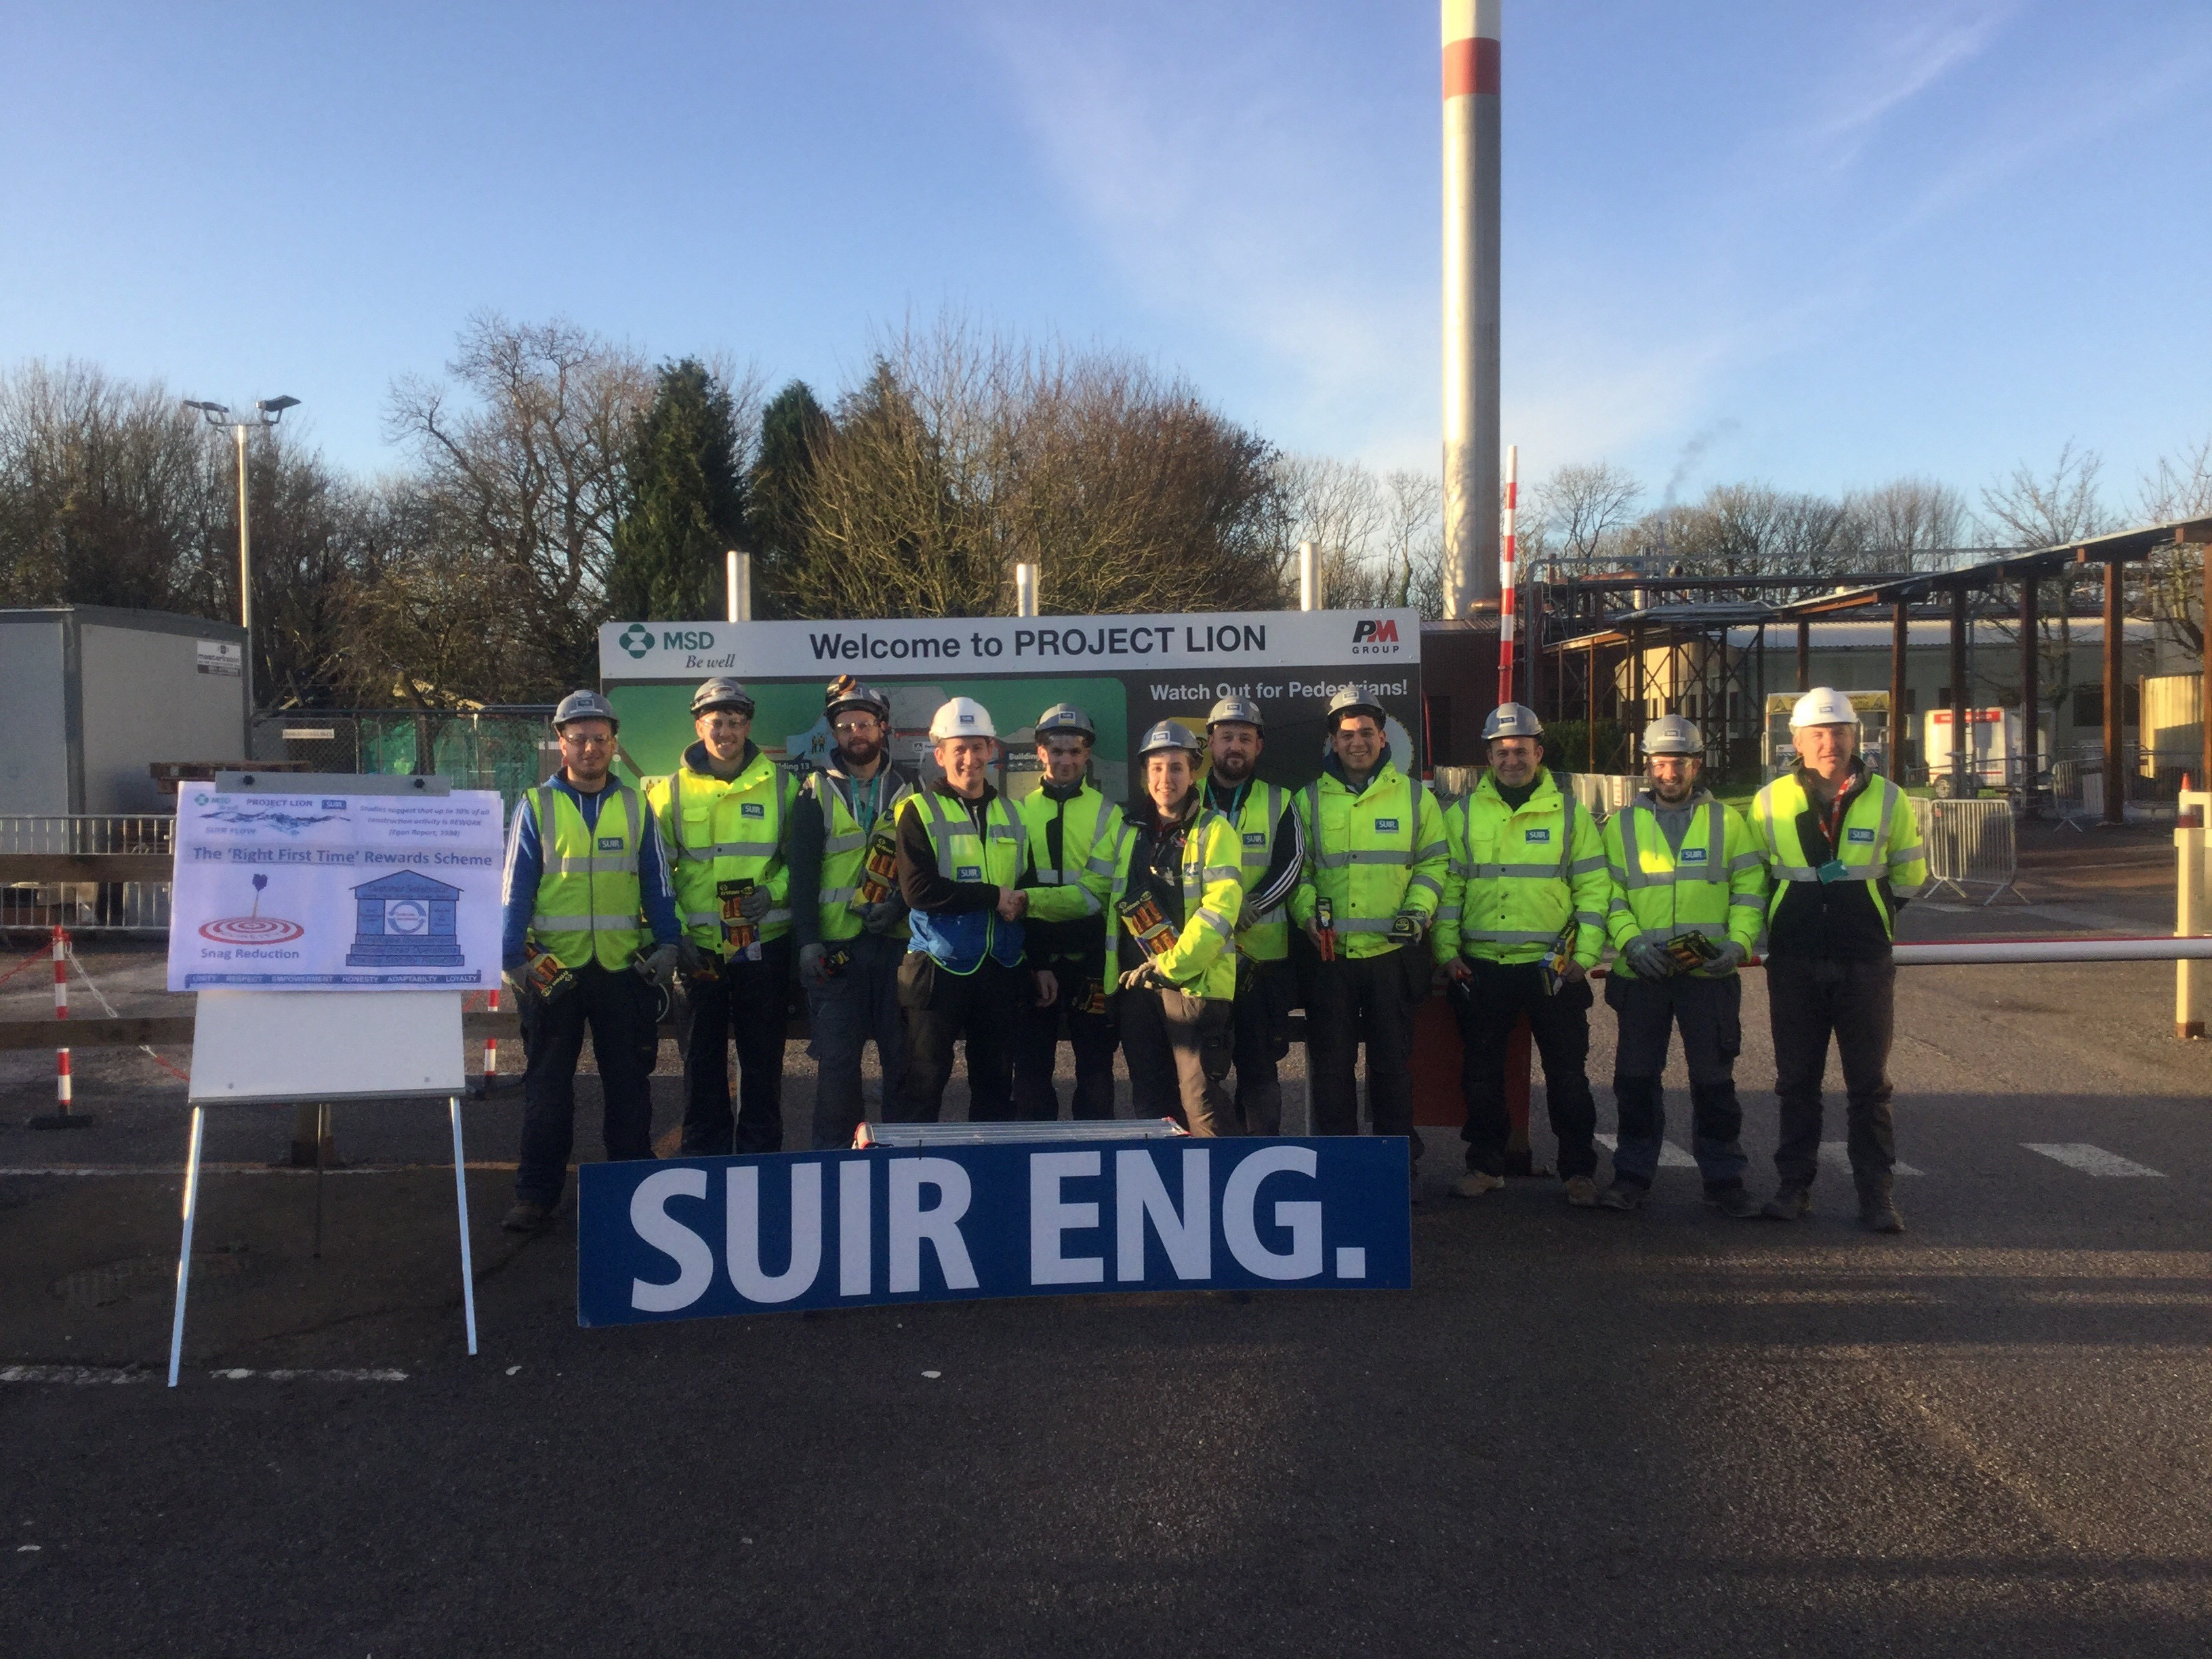 Suir eng onsite at MSD Brinny project